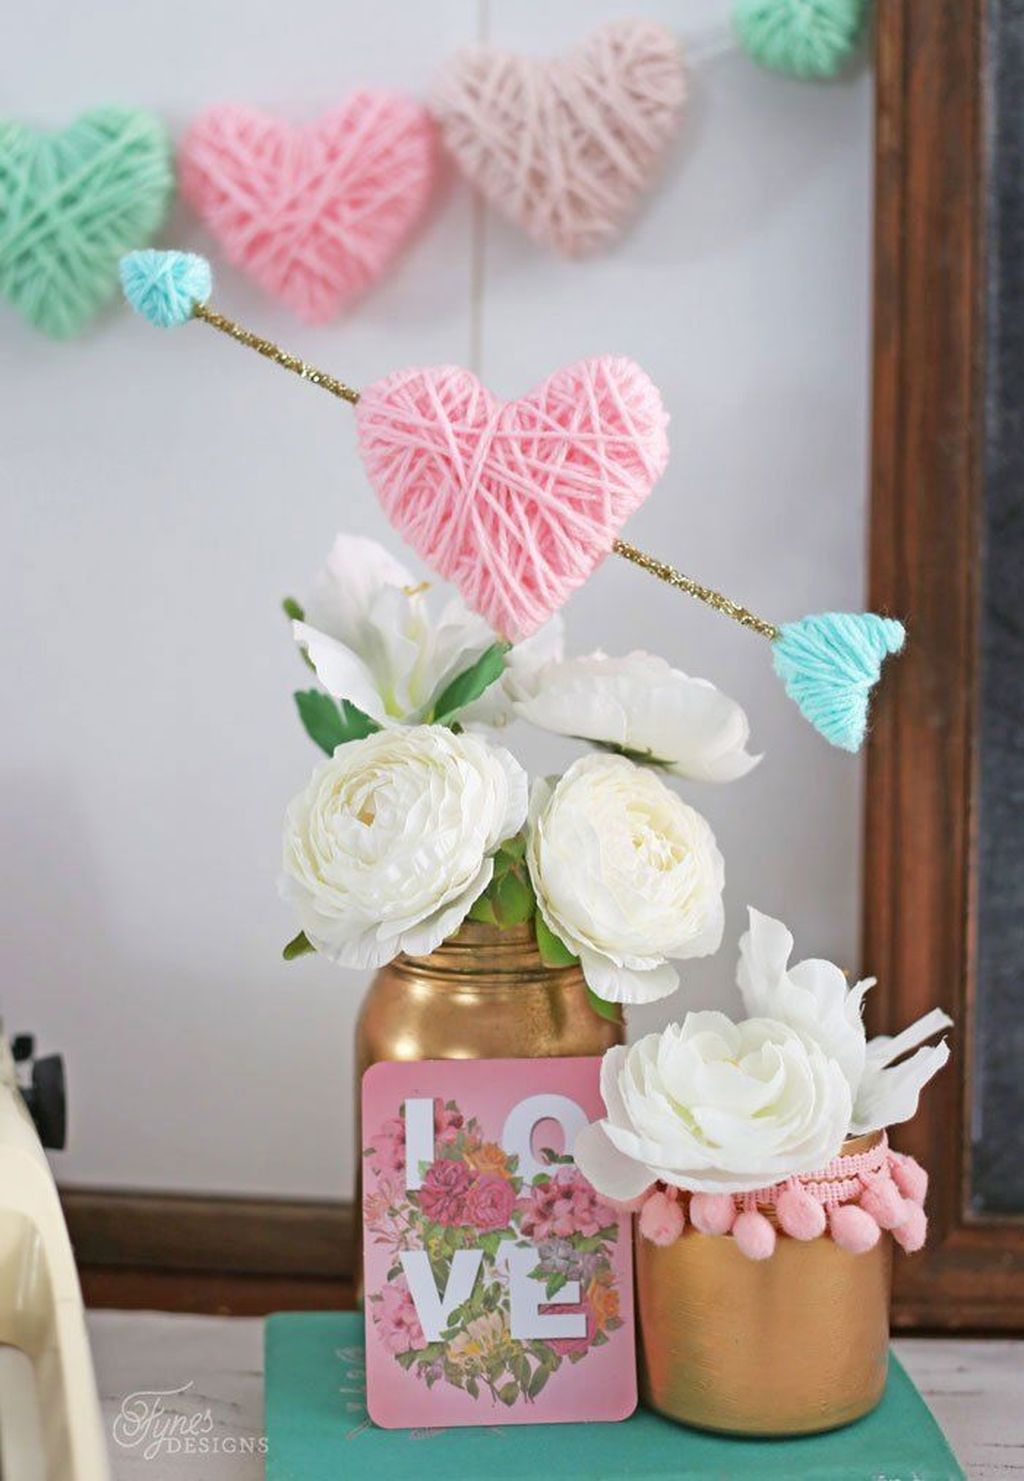 Inspiring Valentine Crafts Ideas For Your Home Decor 29